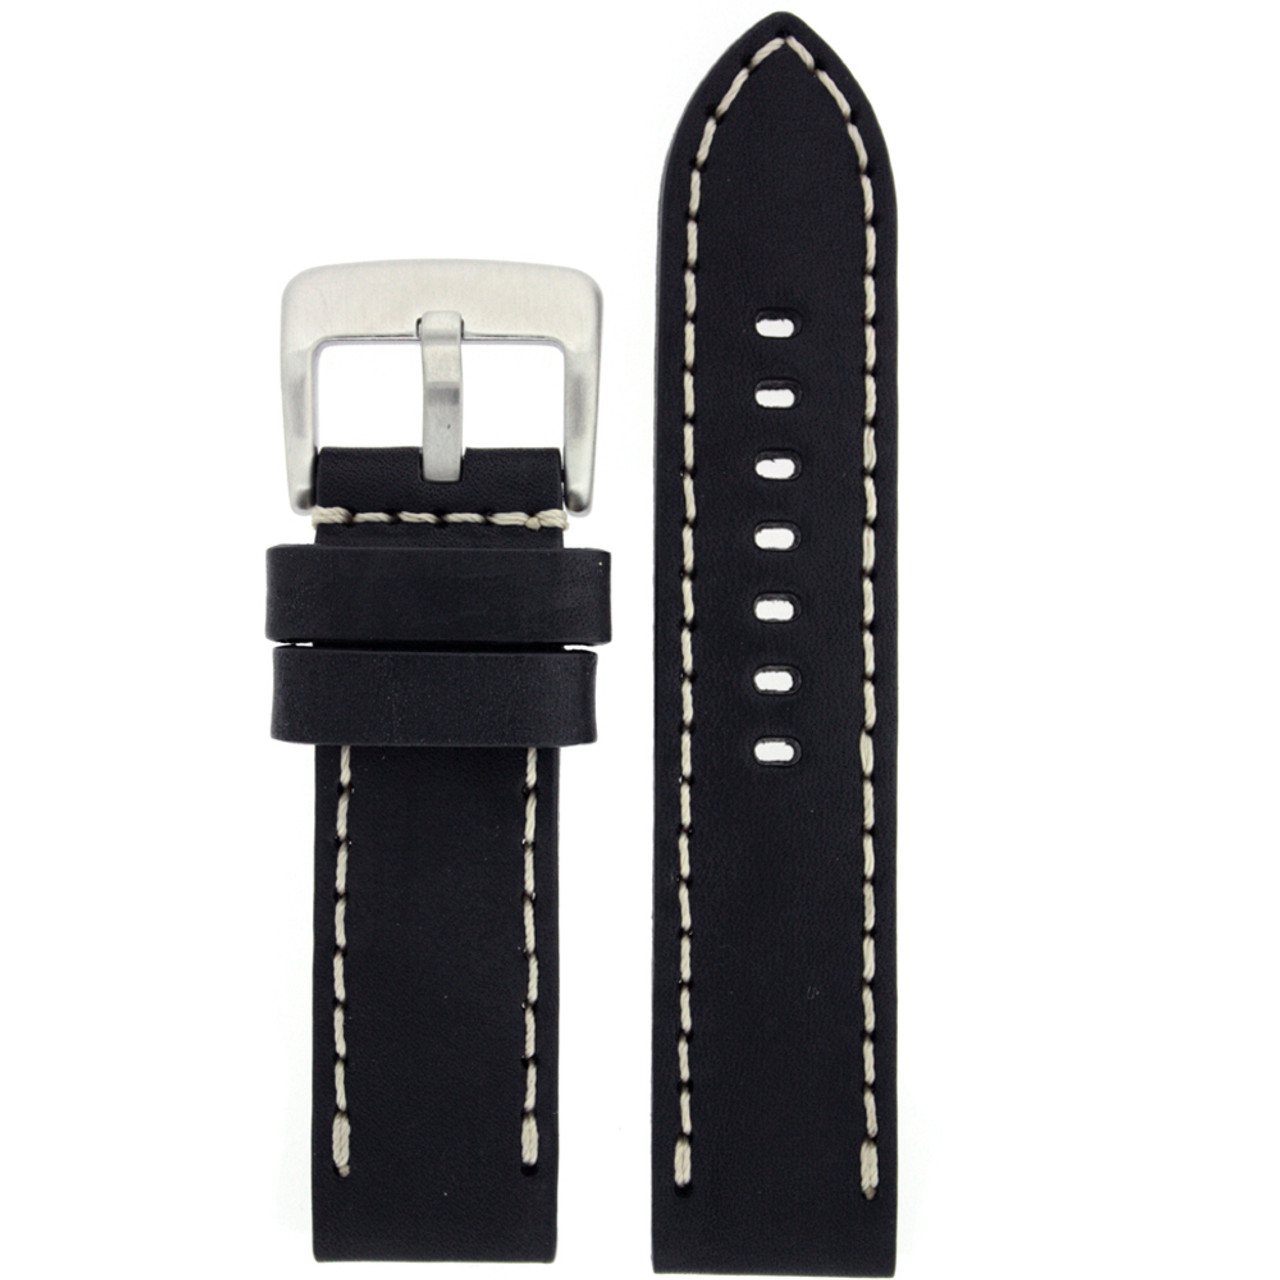 Black Leather Watch Band with White Topstitching - Top View